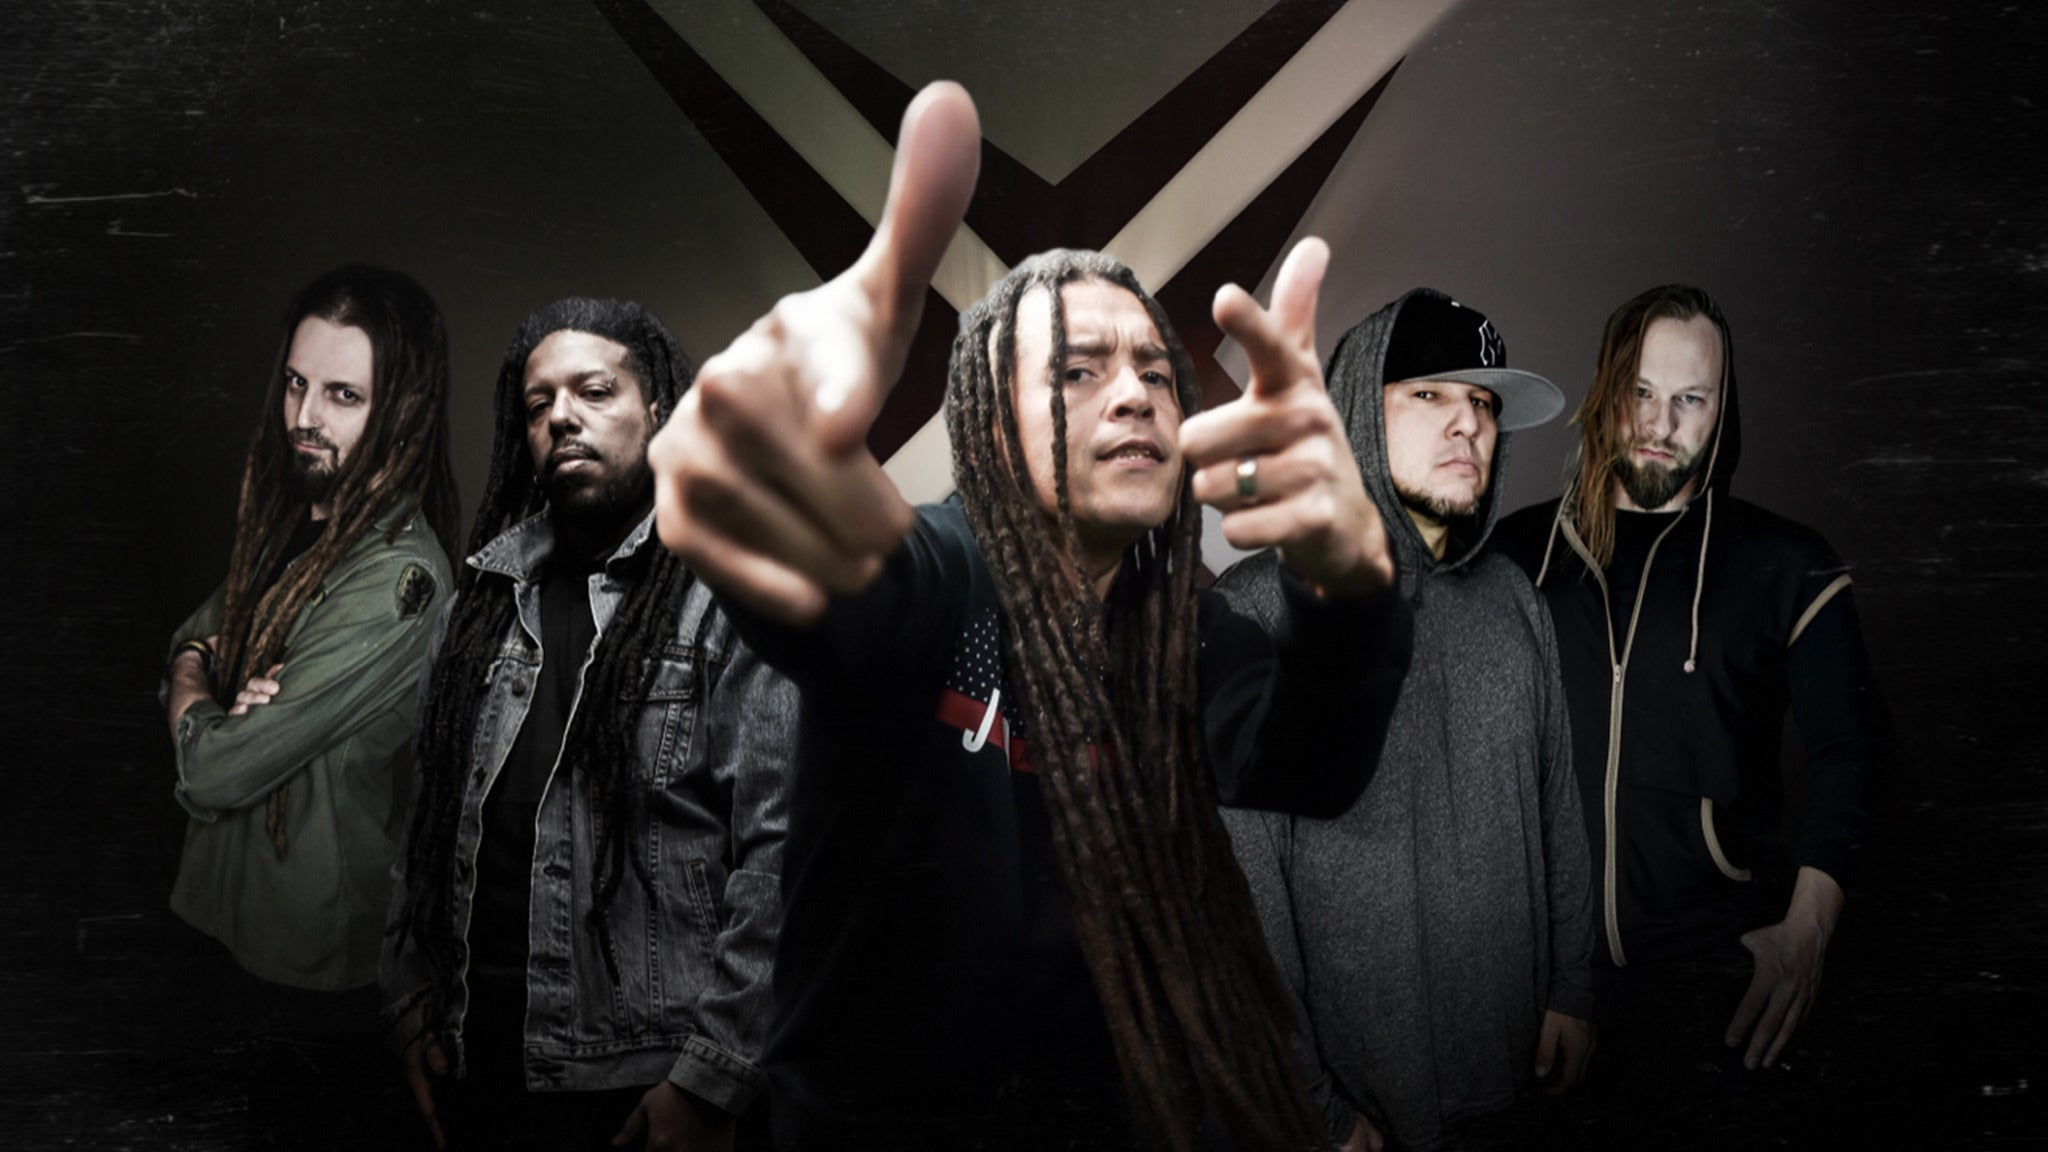 Nonpoint, Days Under Authority, Stoneshiver, Nine Shrines